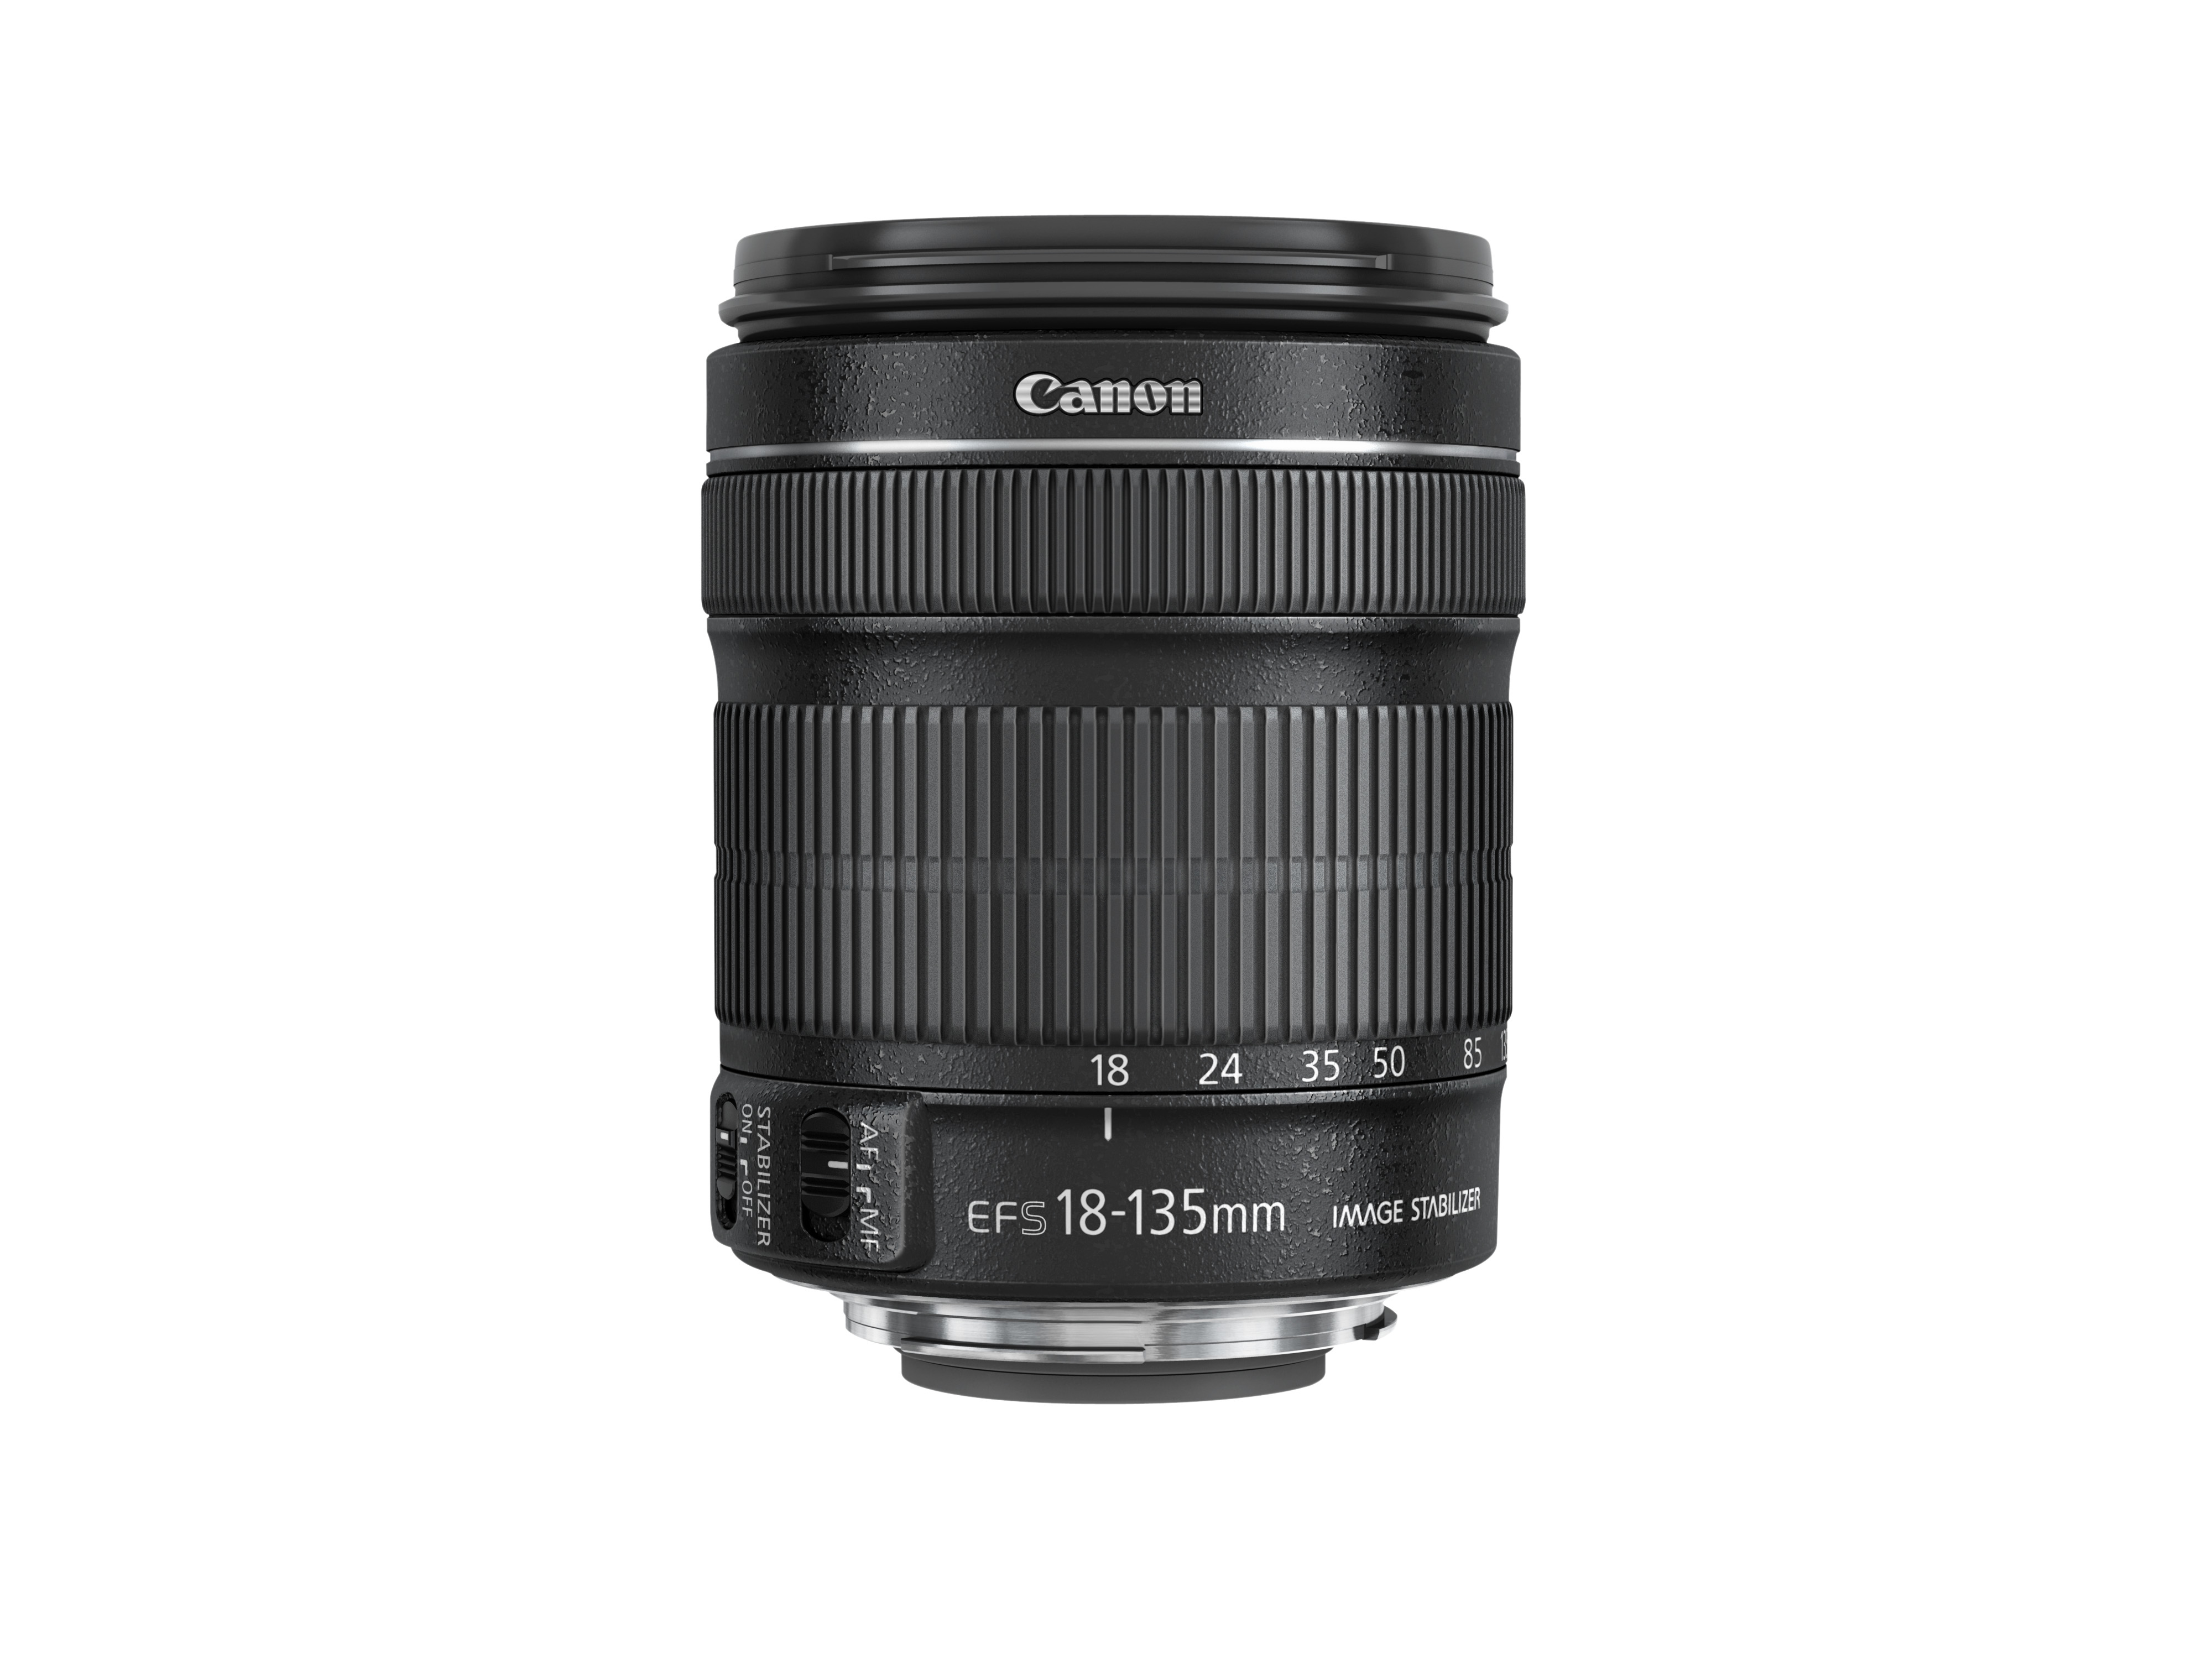 Canon EF-S 18-135mm f / 3.5-5.6 IS STM